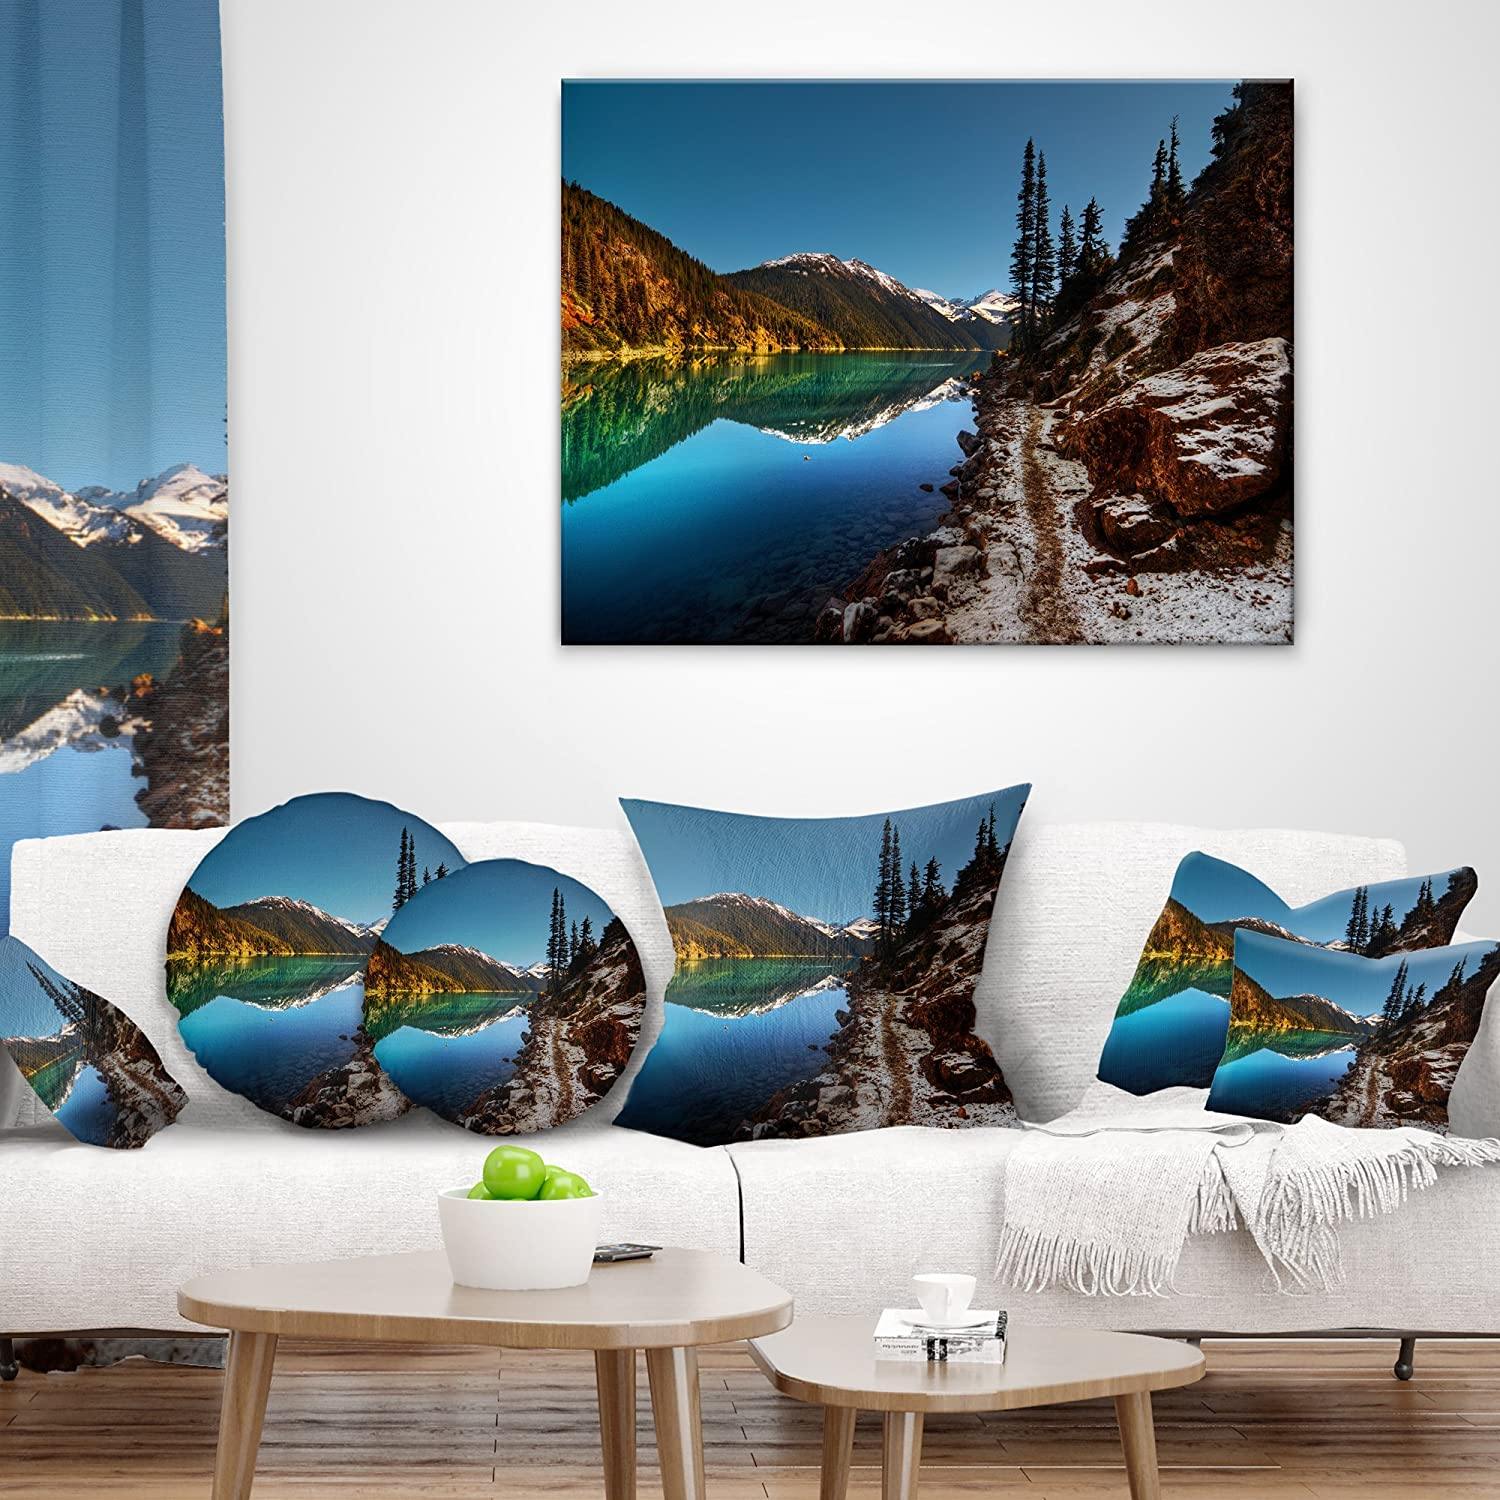 Sofa Throw Pillow x 16 in, Designart CU14410-16-16 Blue Clear Lake with Mountains Landscape Printed Cushion Cover for Living Room